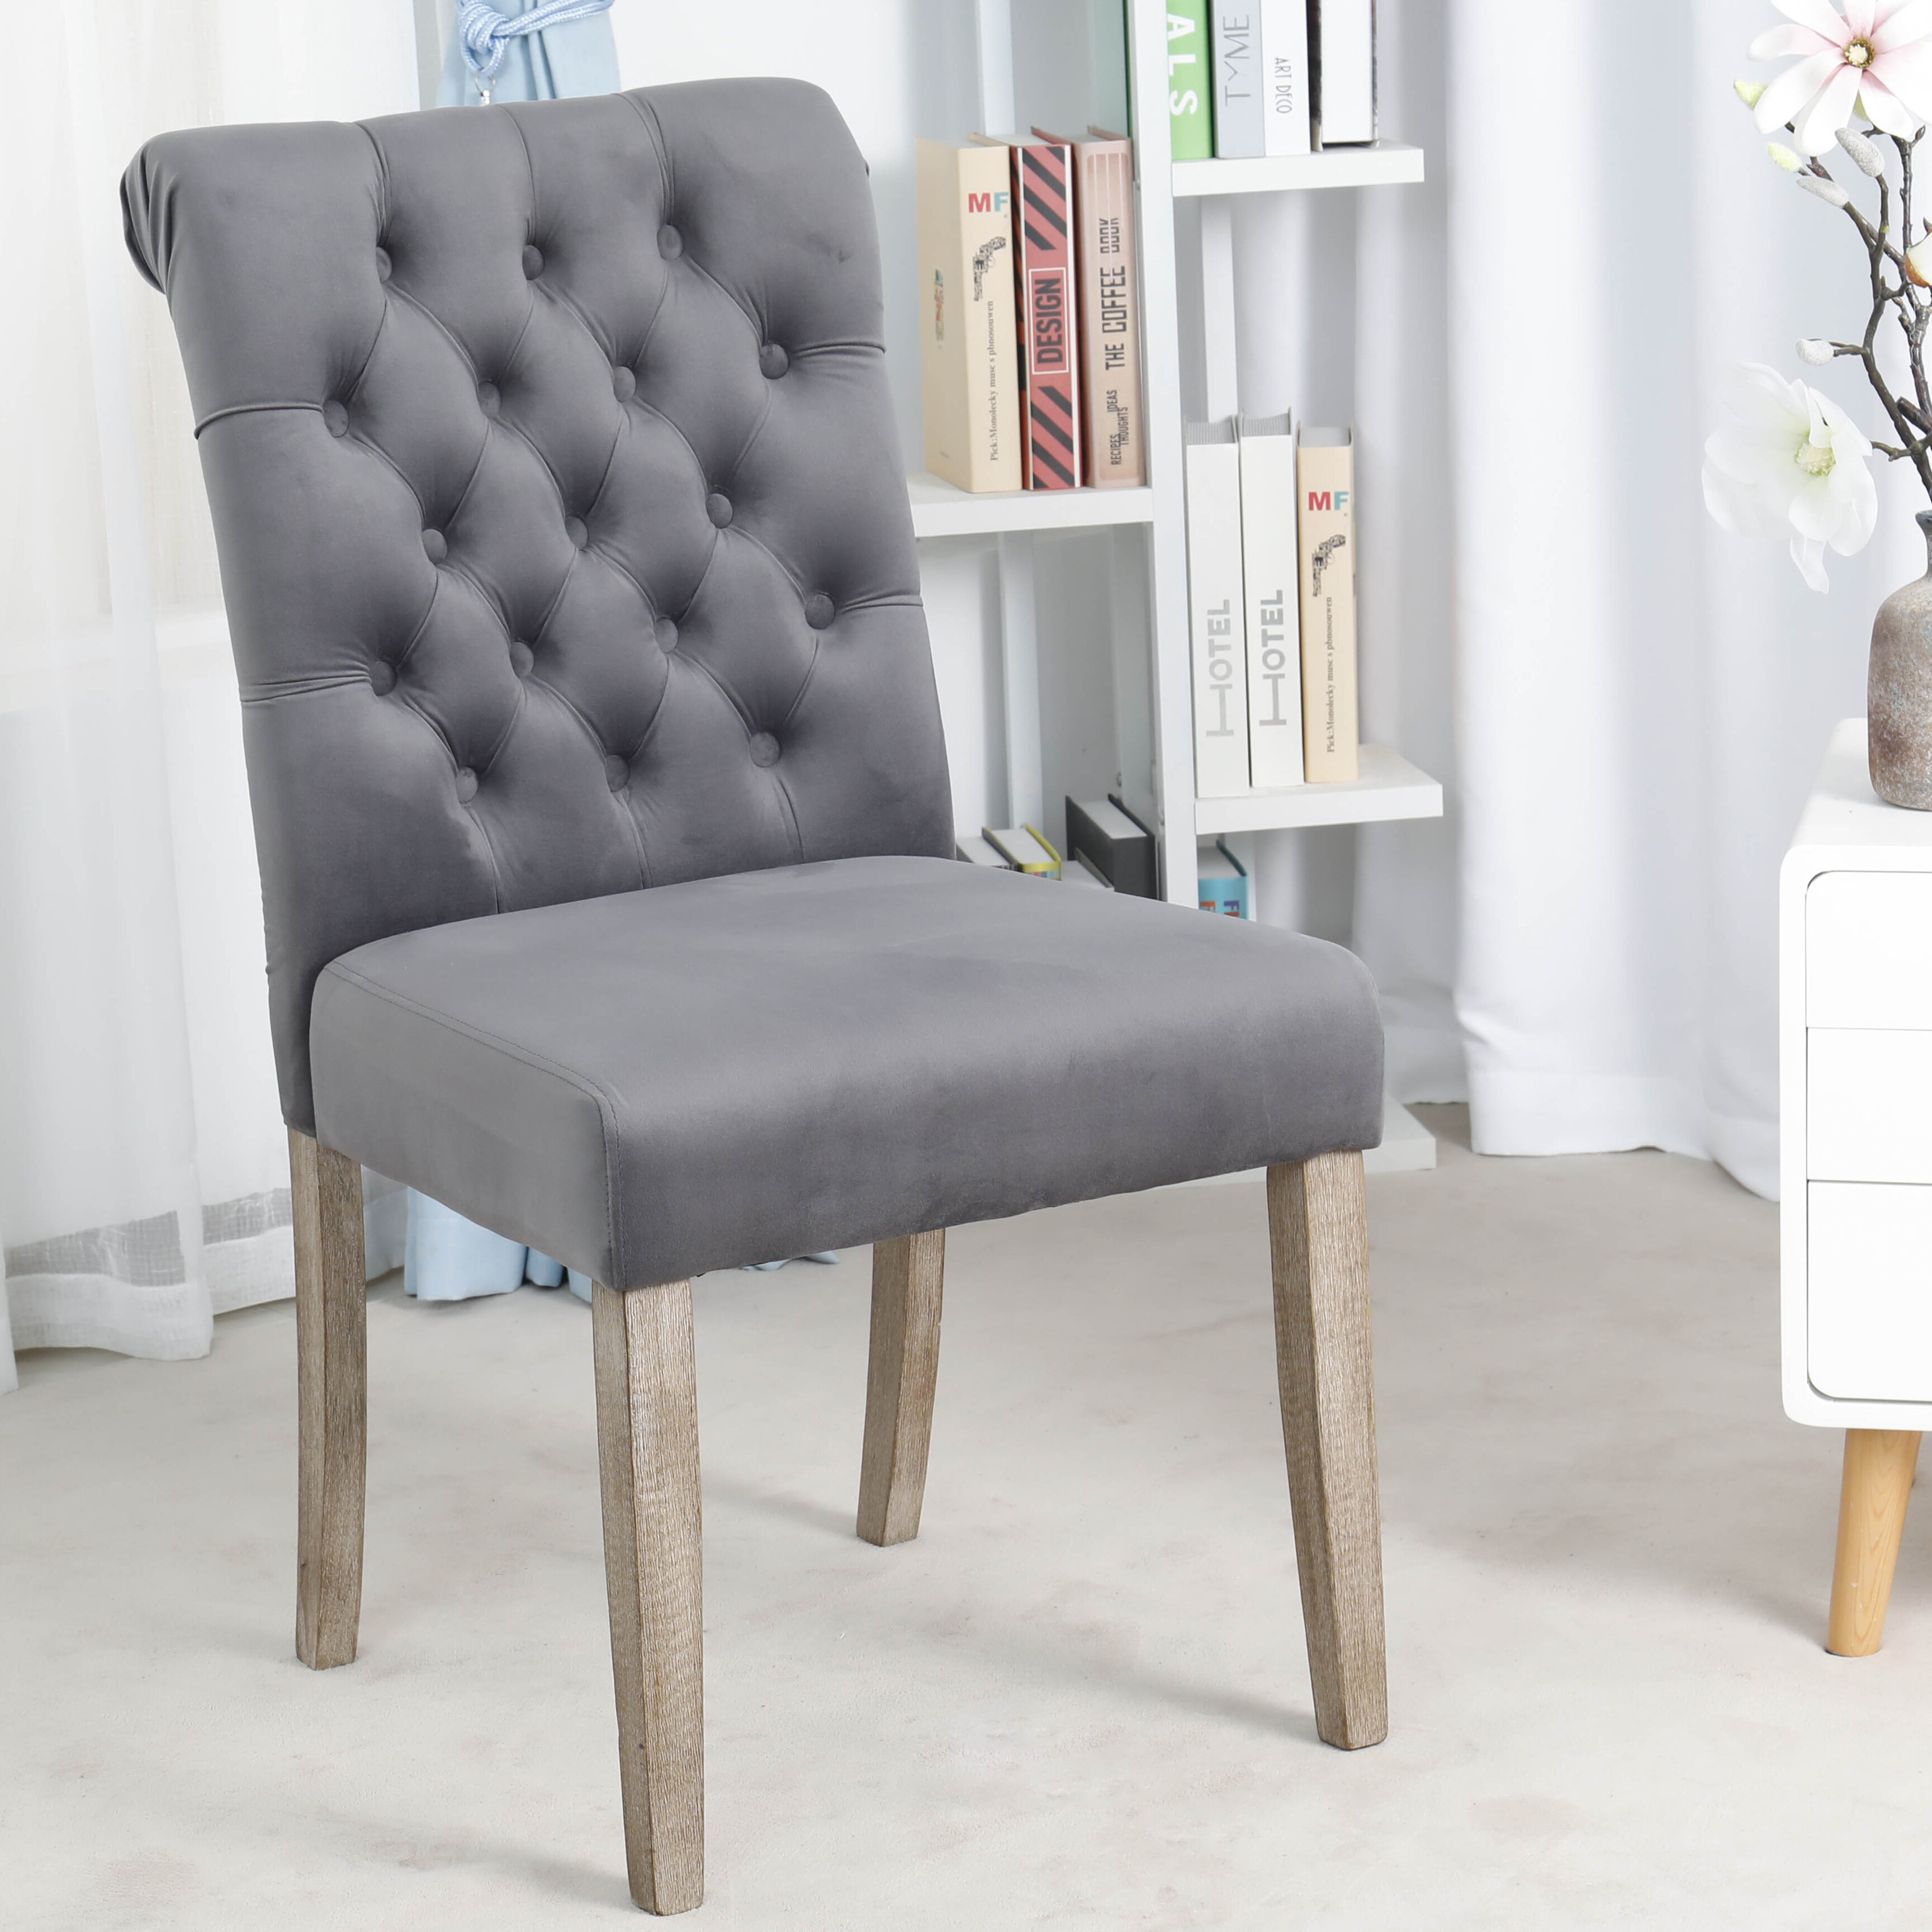 Kamron High Back Tufted Upholstered Dining Chair